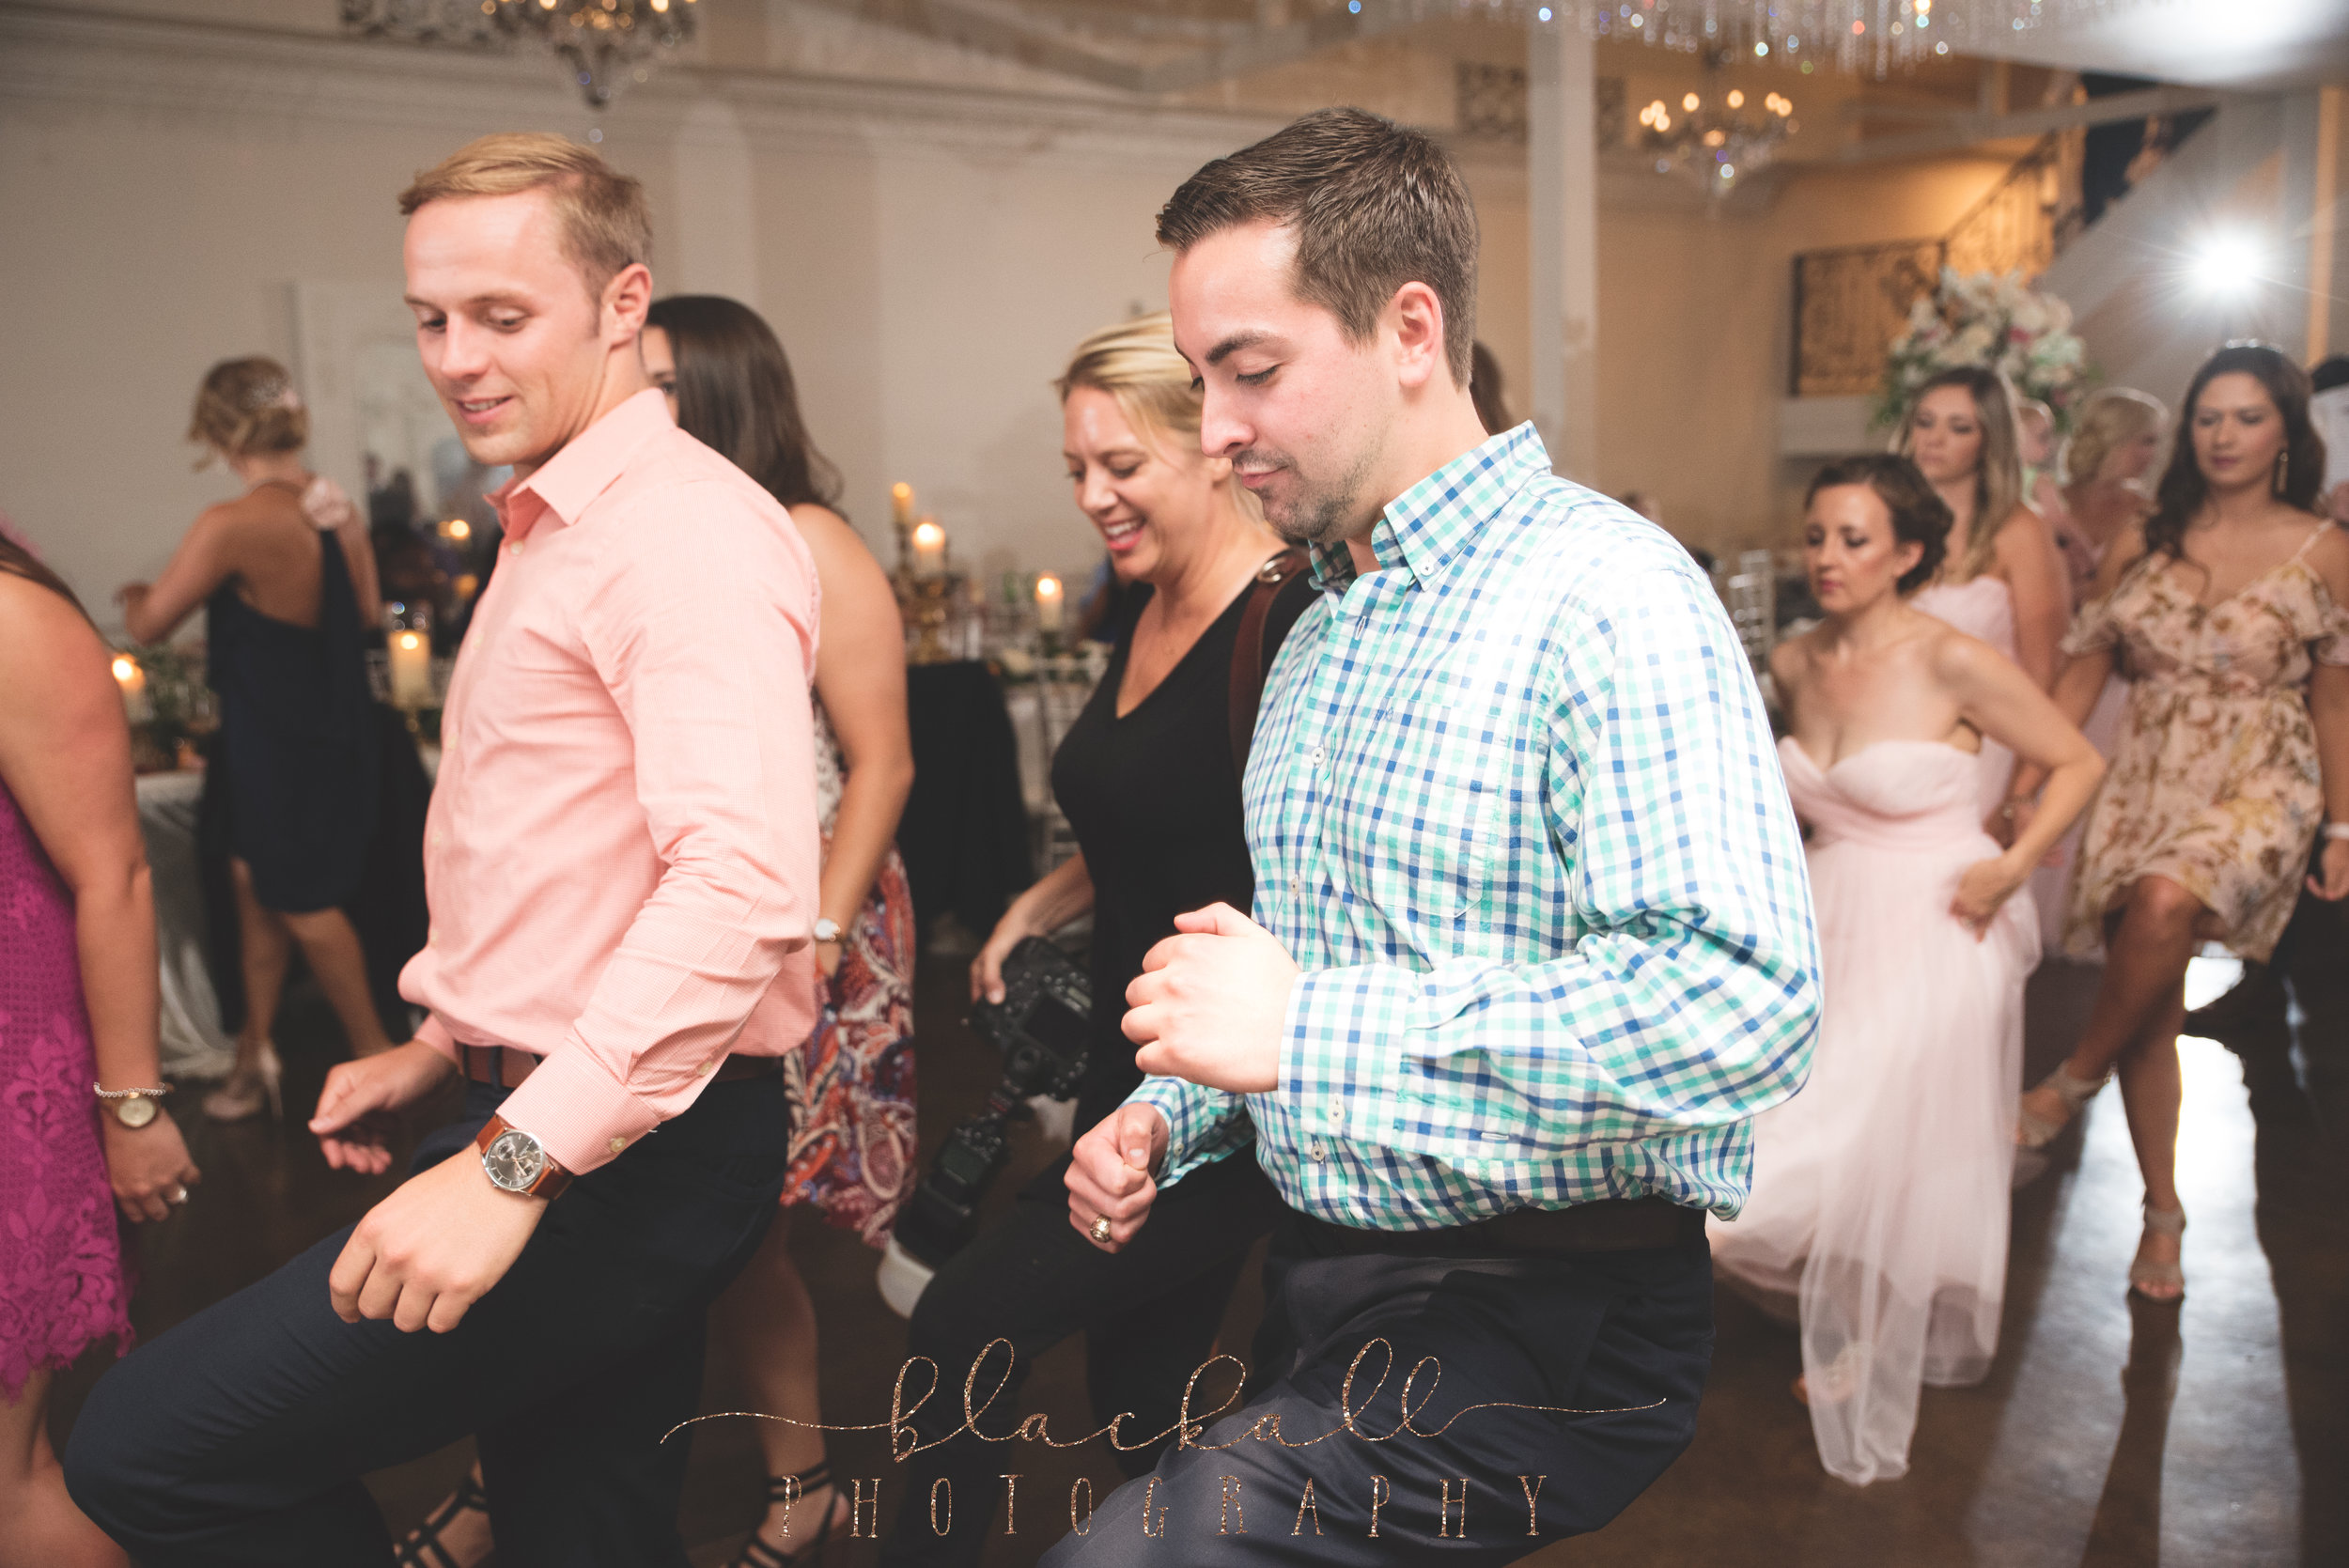 WEDDING_BlackallPhotography_53.JPG